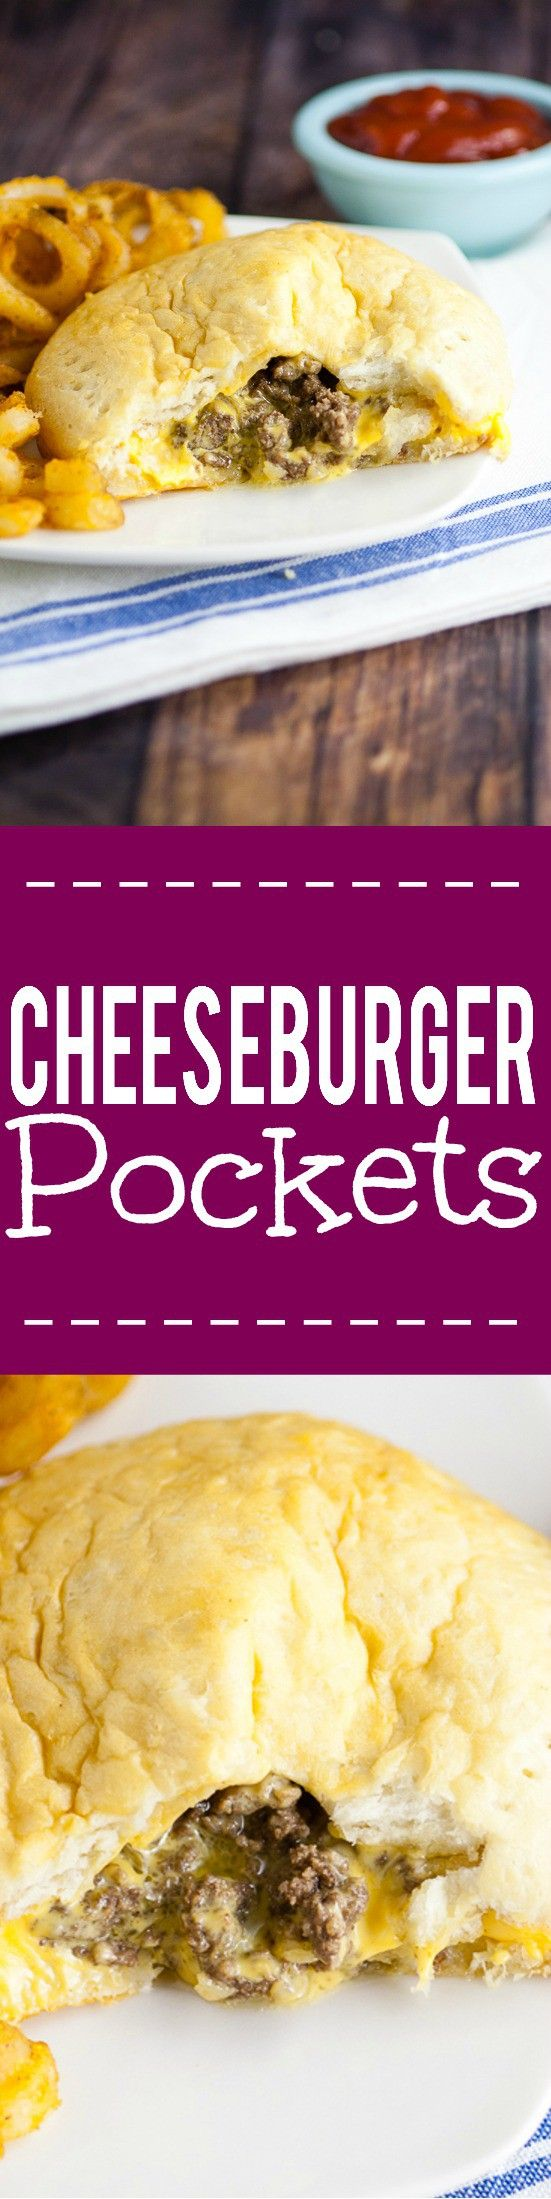 Cheesburger Pockets Recipe - Made in just 30 minutes with 5 ingredients…